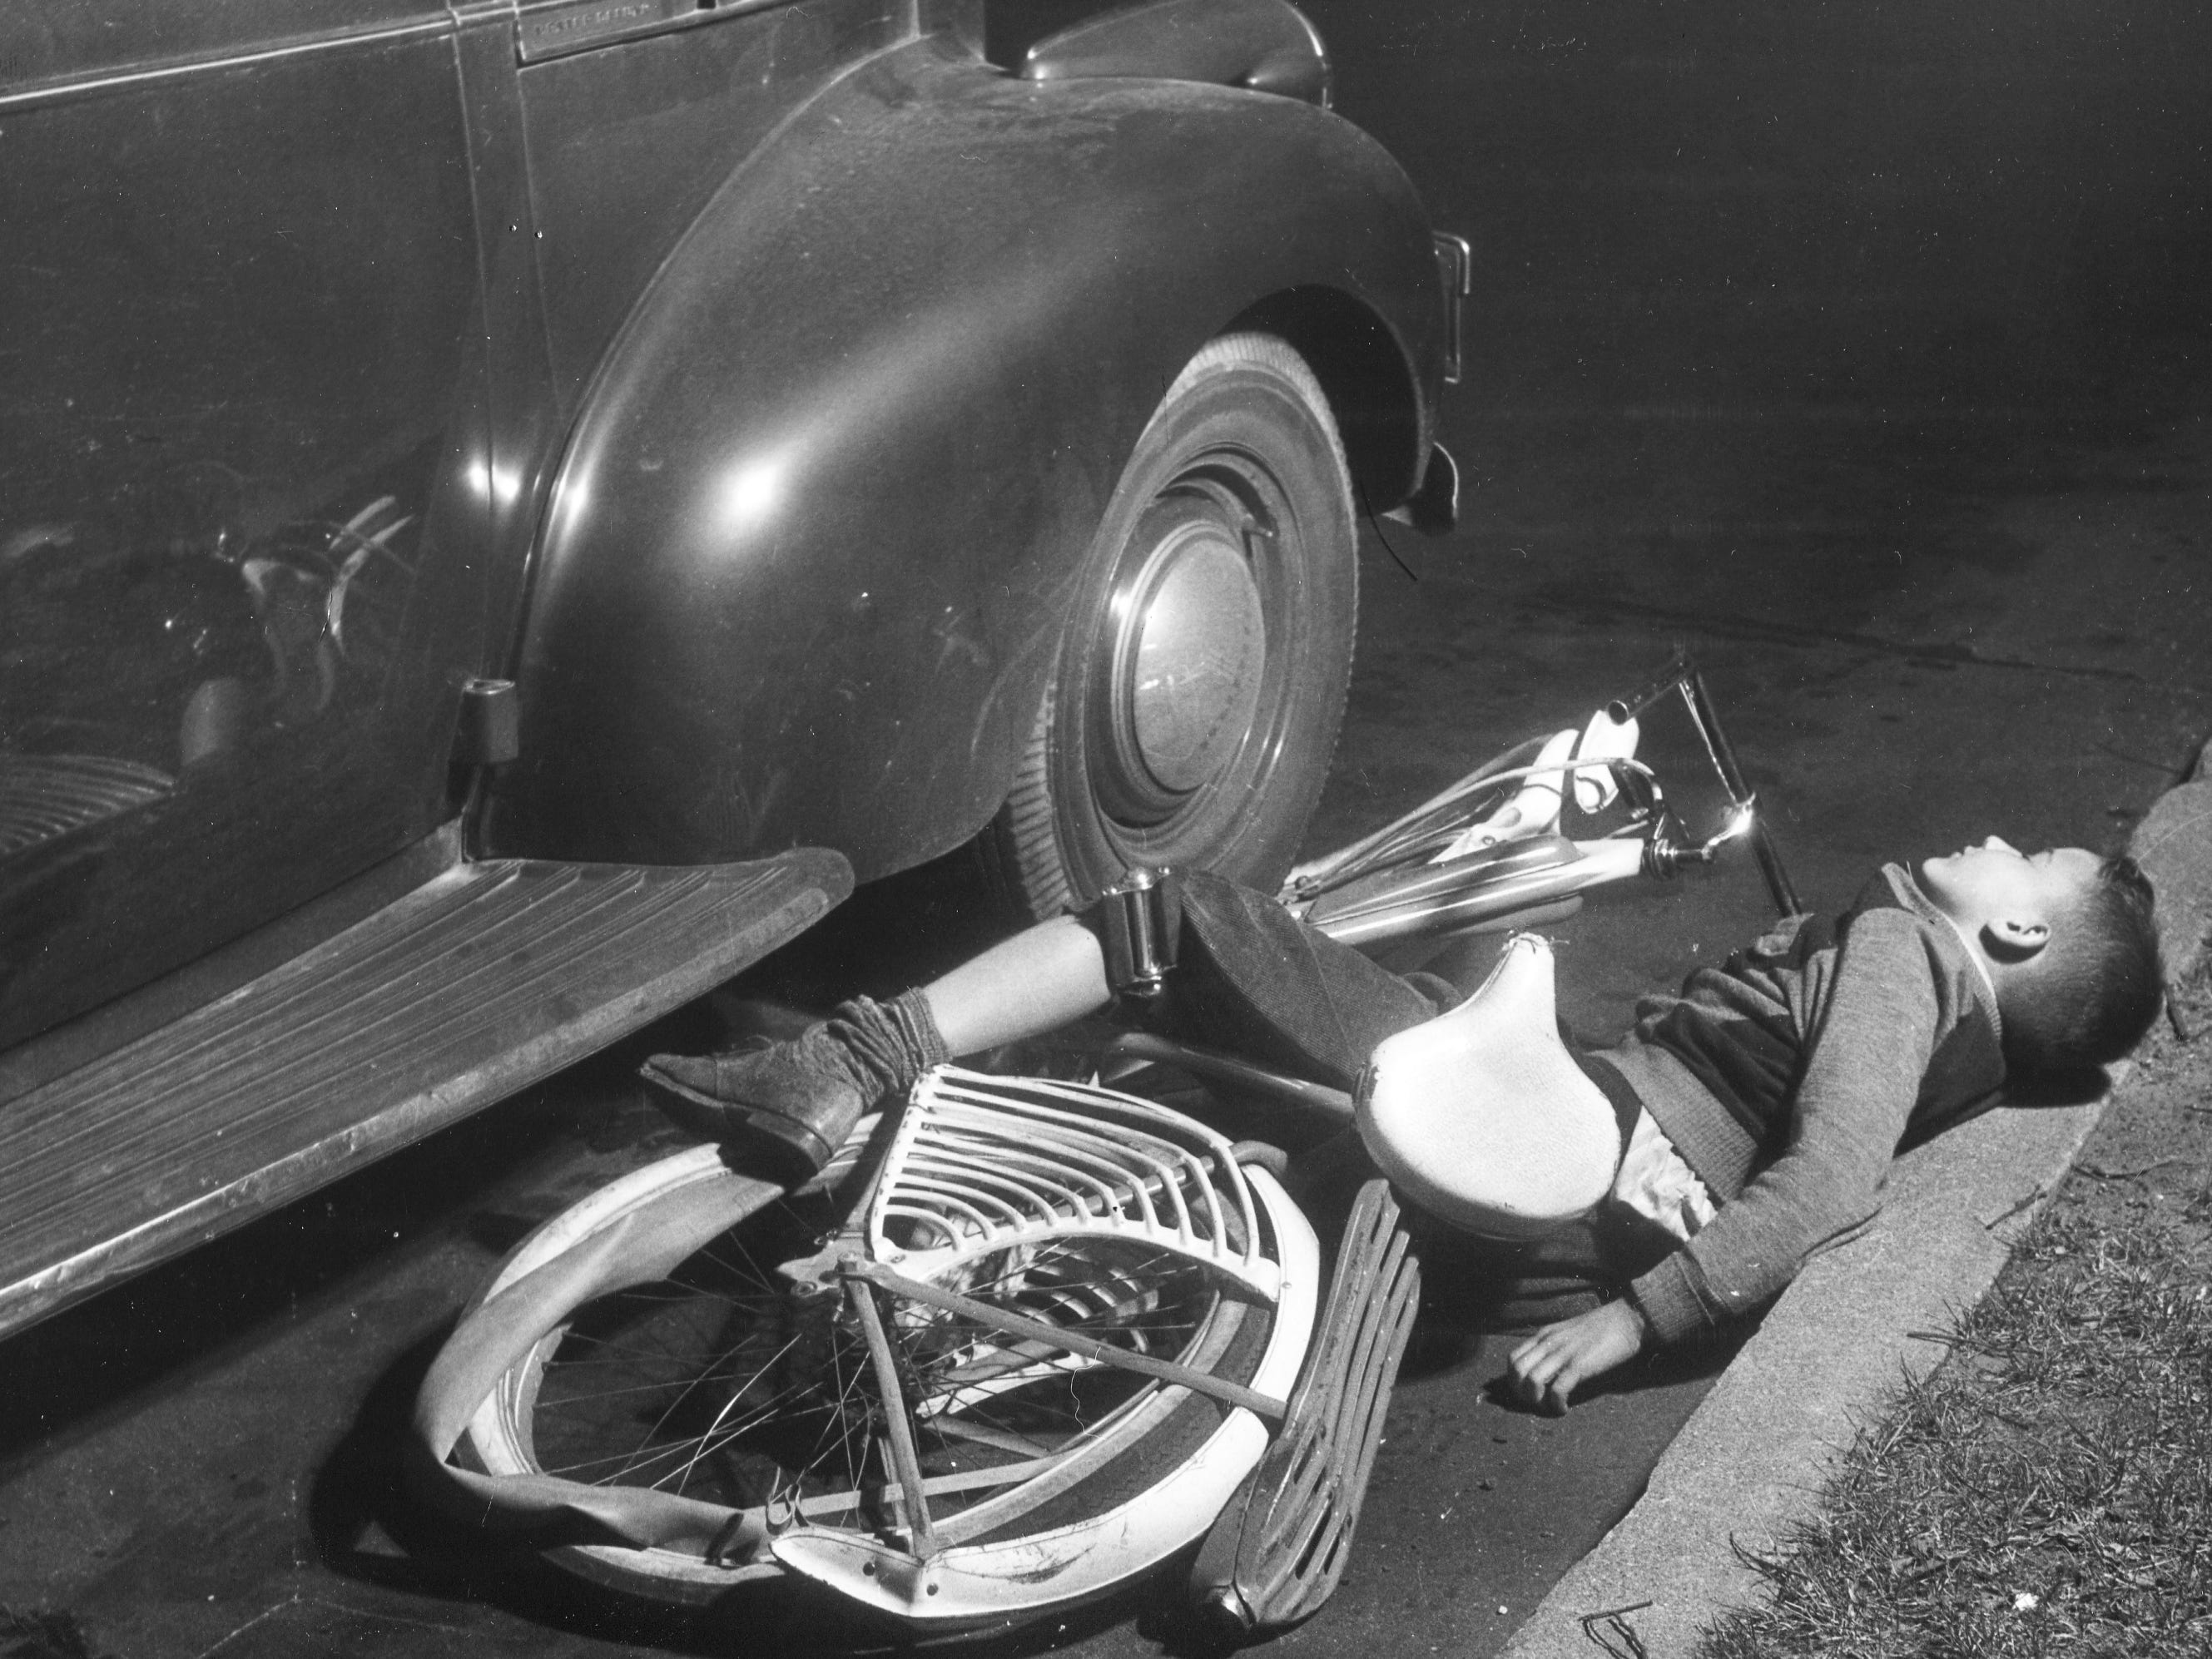 In 1944, shocking images like this one were used in bicycle safety classes by police officers.